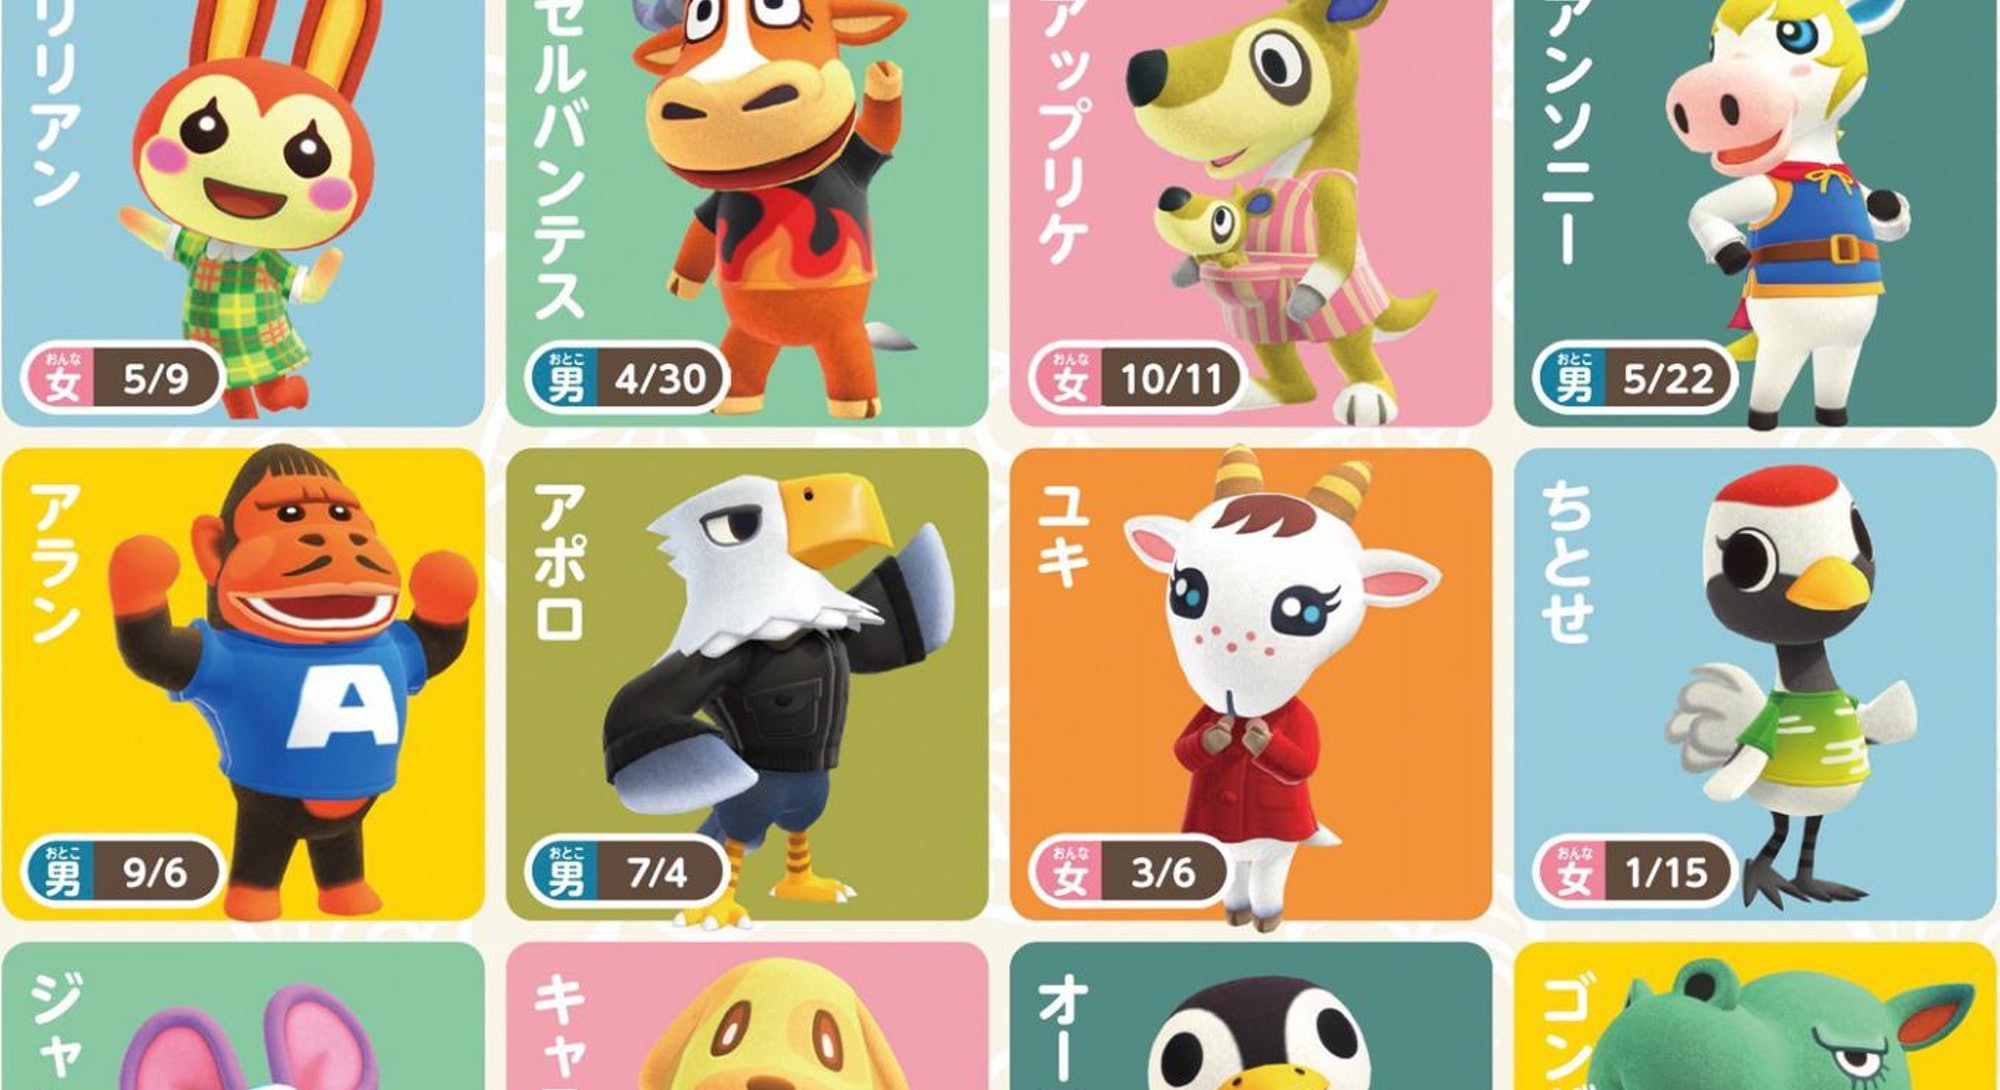 animal crossing villagers names and pictures